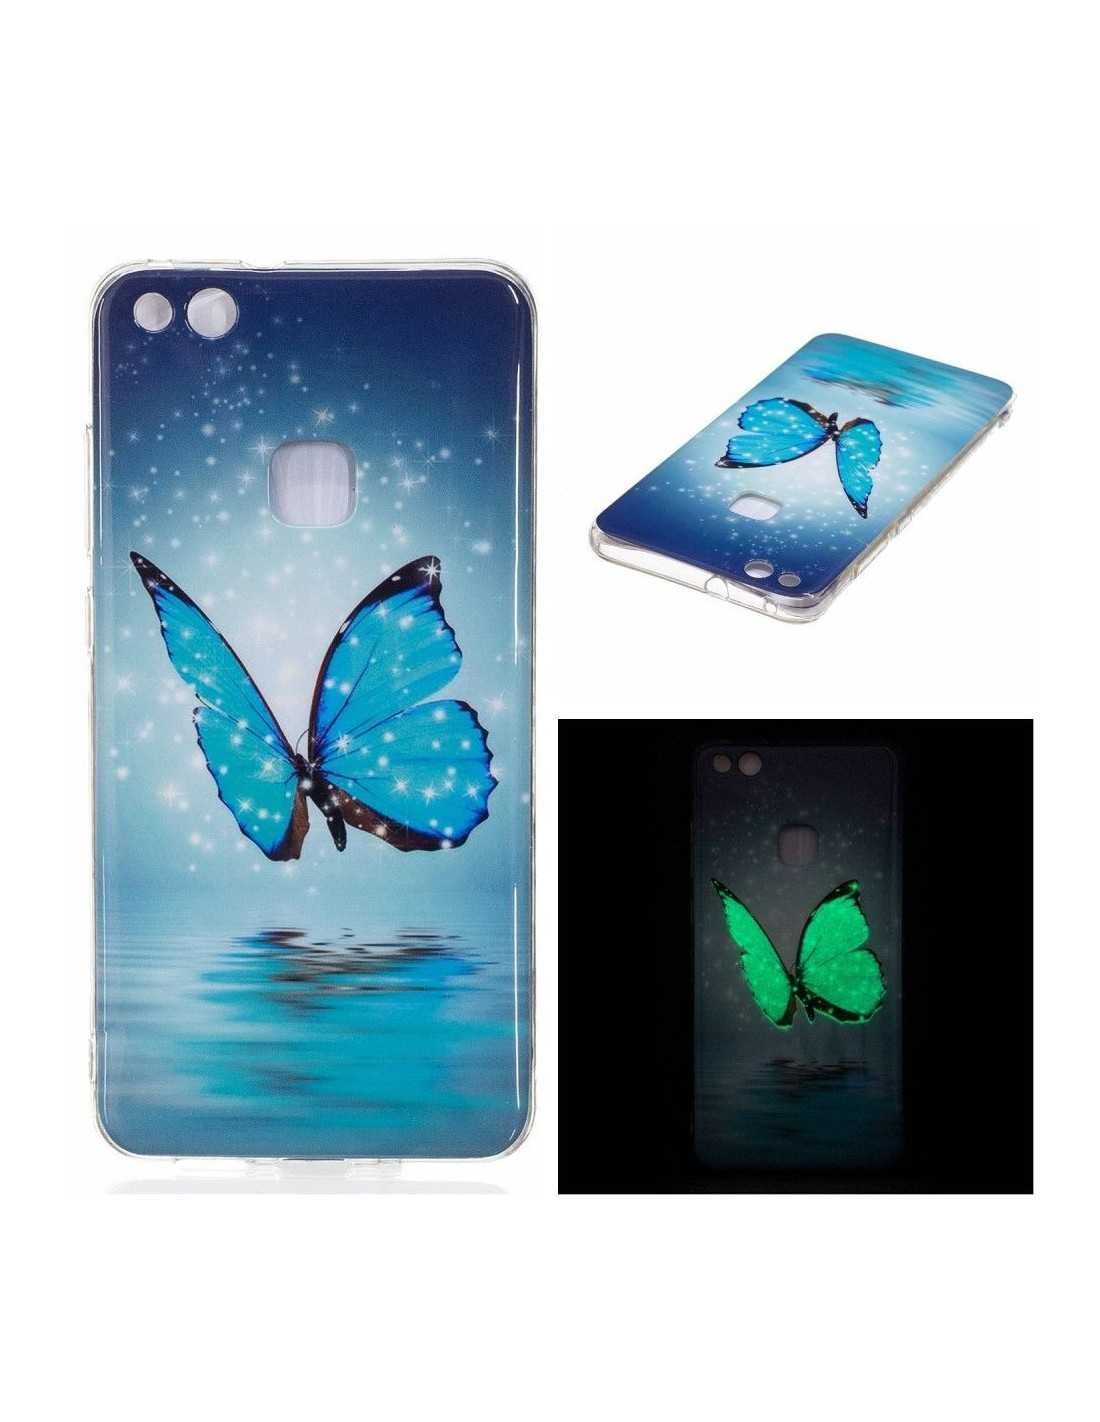 Coque Huawei P10 Lite silicone Phospho Papillion - All4iphone